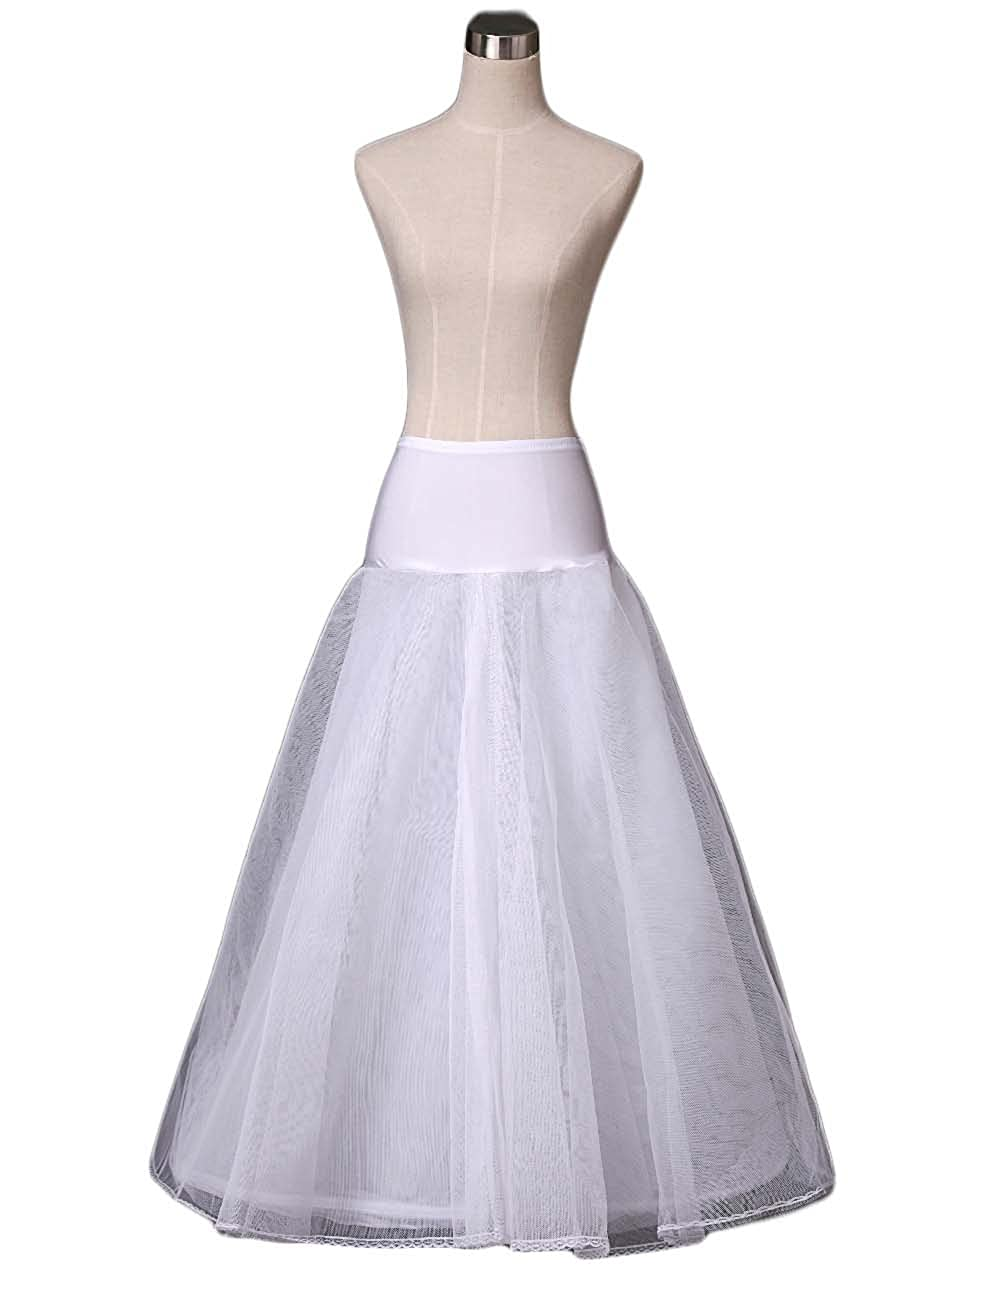 AliceHouse Womens Hoopless Slip A-Line Wedding Petticoat Underskirt Formal 9012